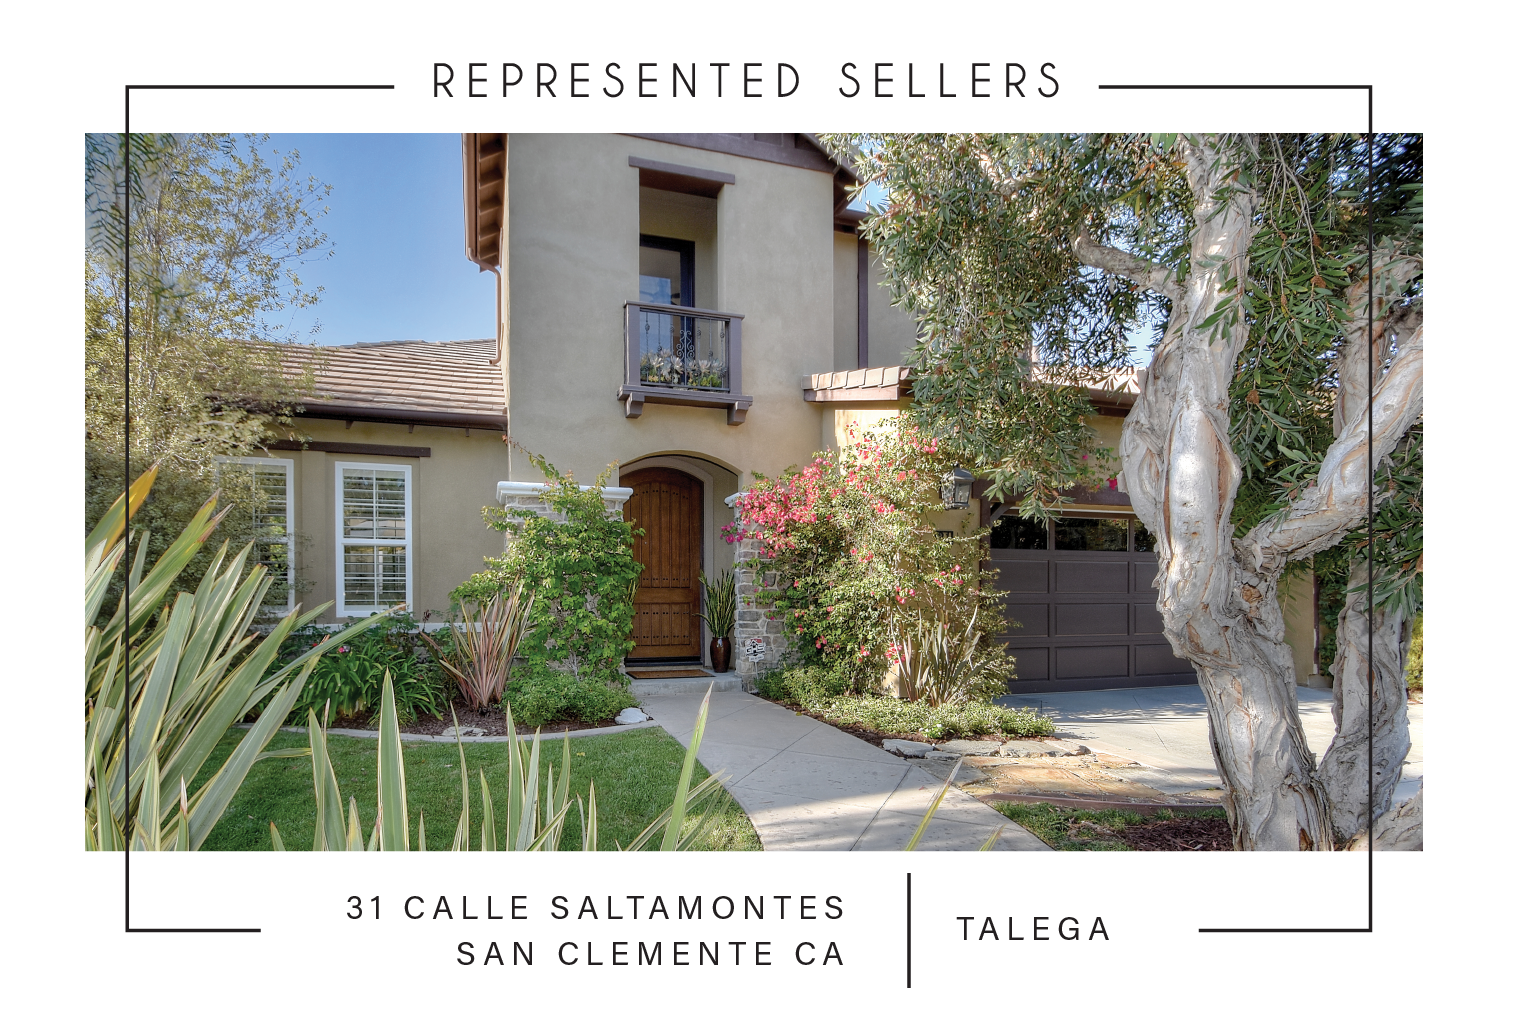 SOLD 1/2/2018    $1,030,000   31 calle saltamontes SAN CLEMENTE CA